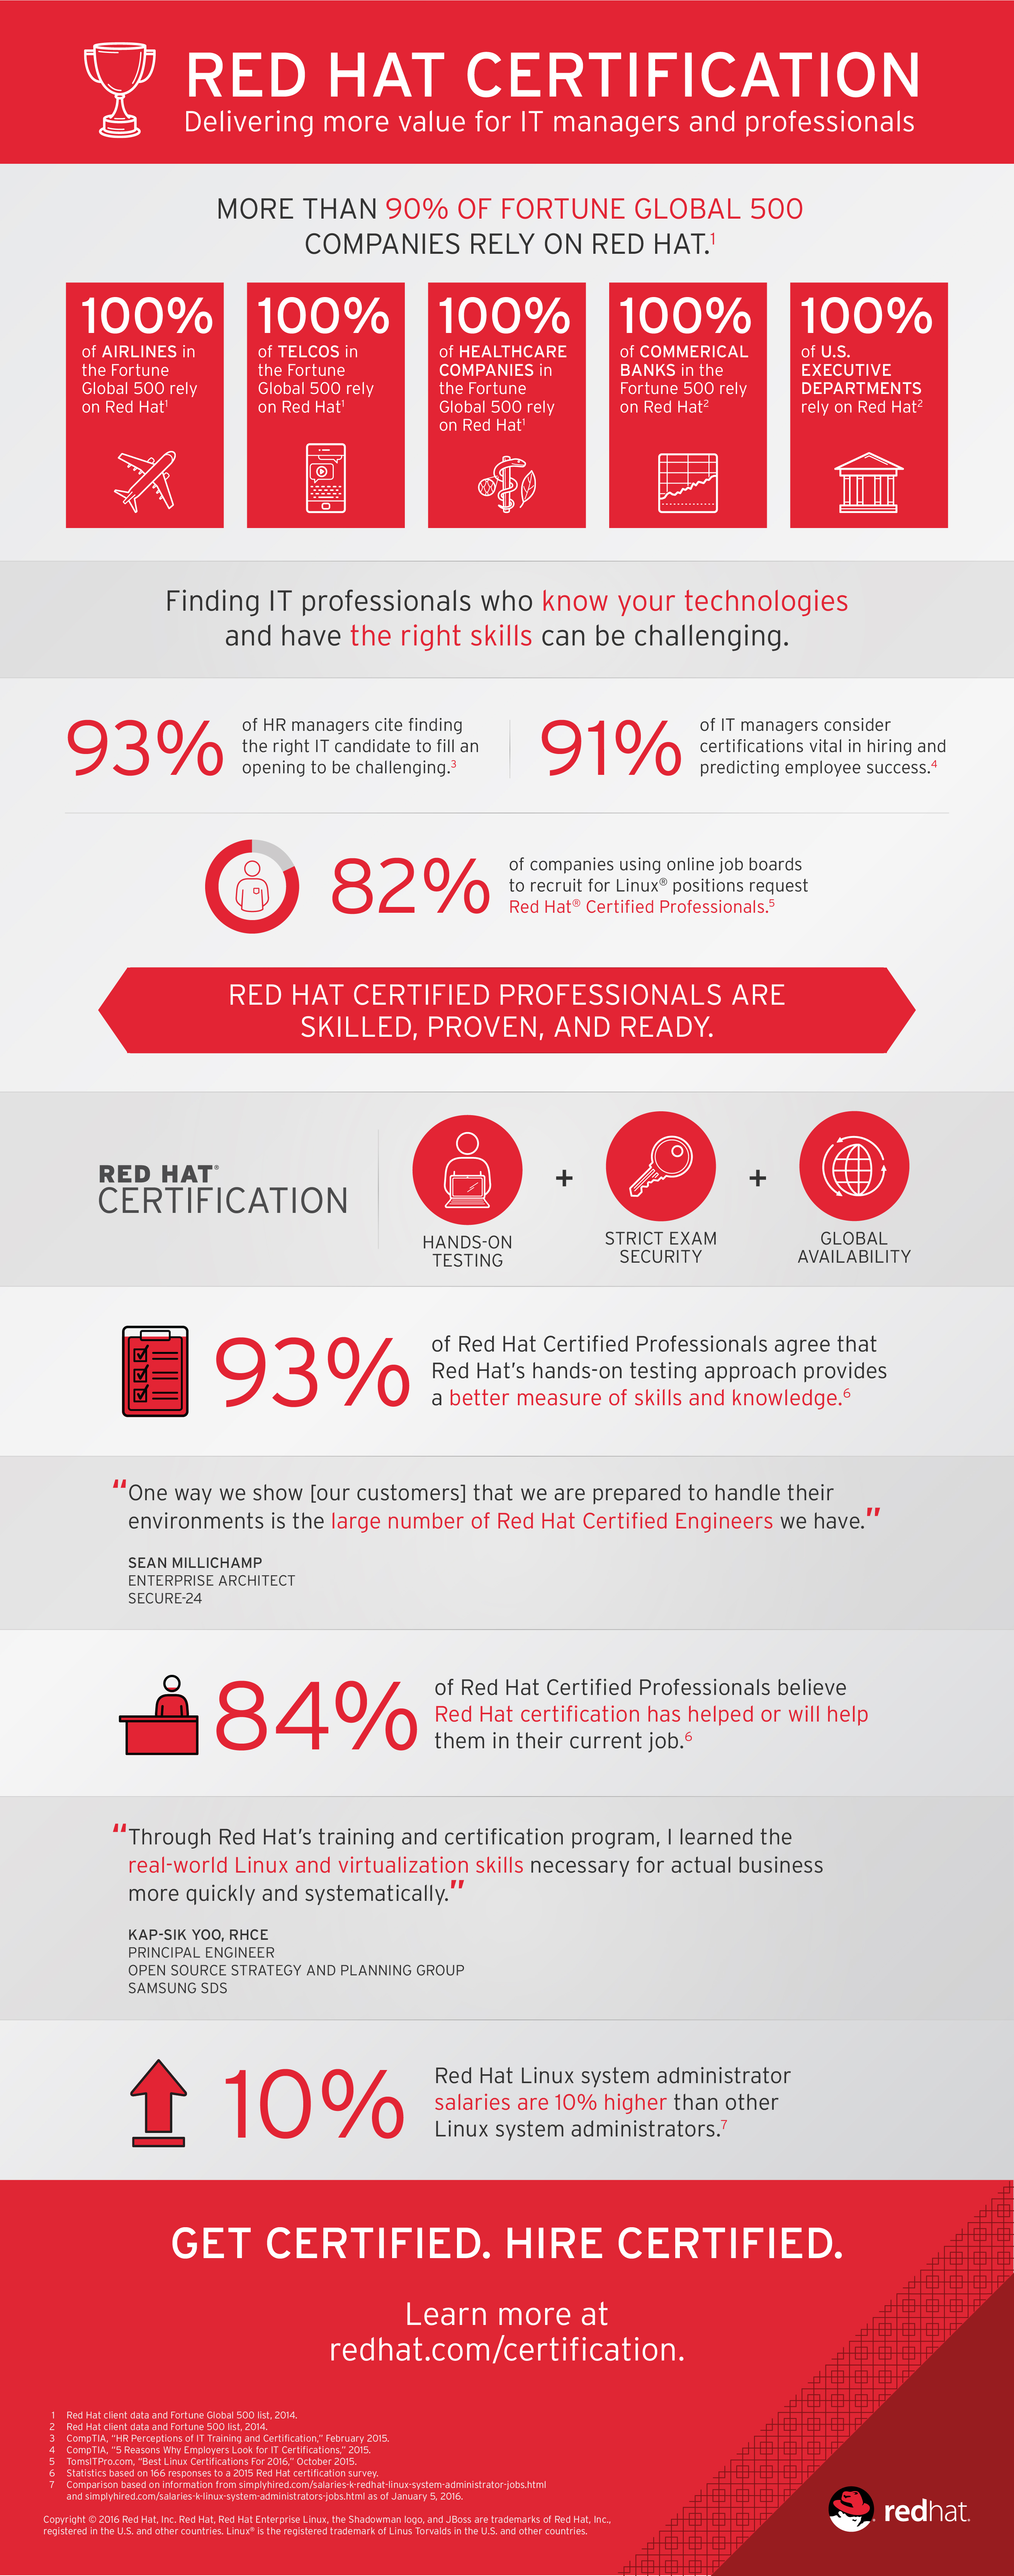 Red Hat Certified Professionals Weigh In On Value Of